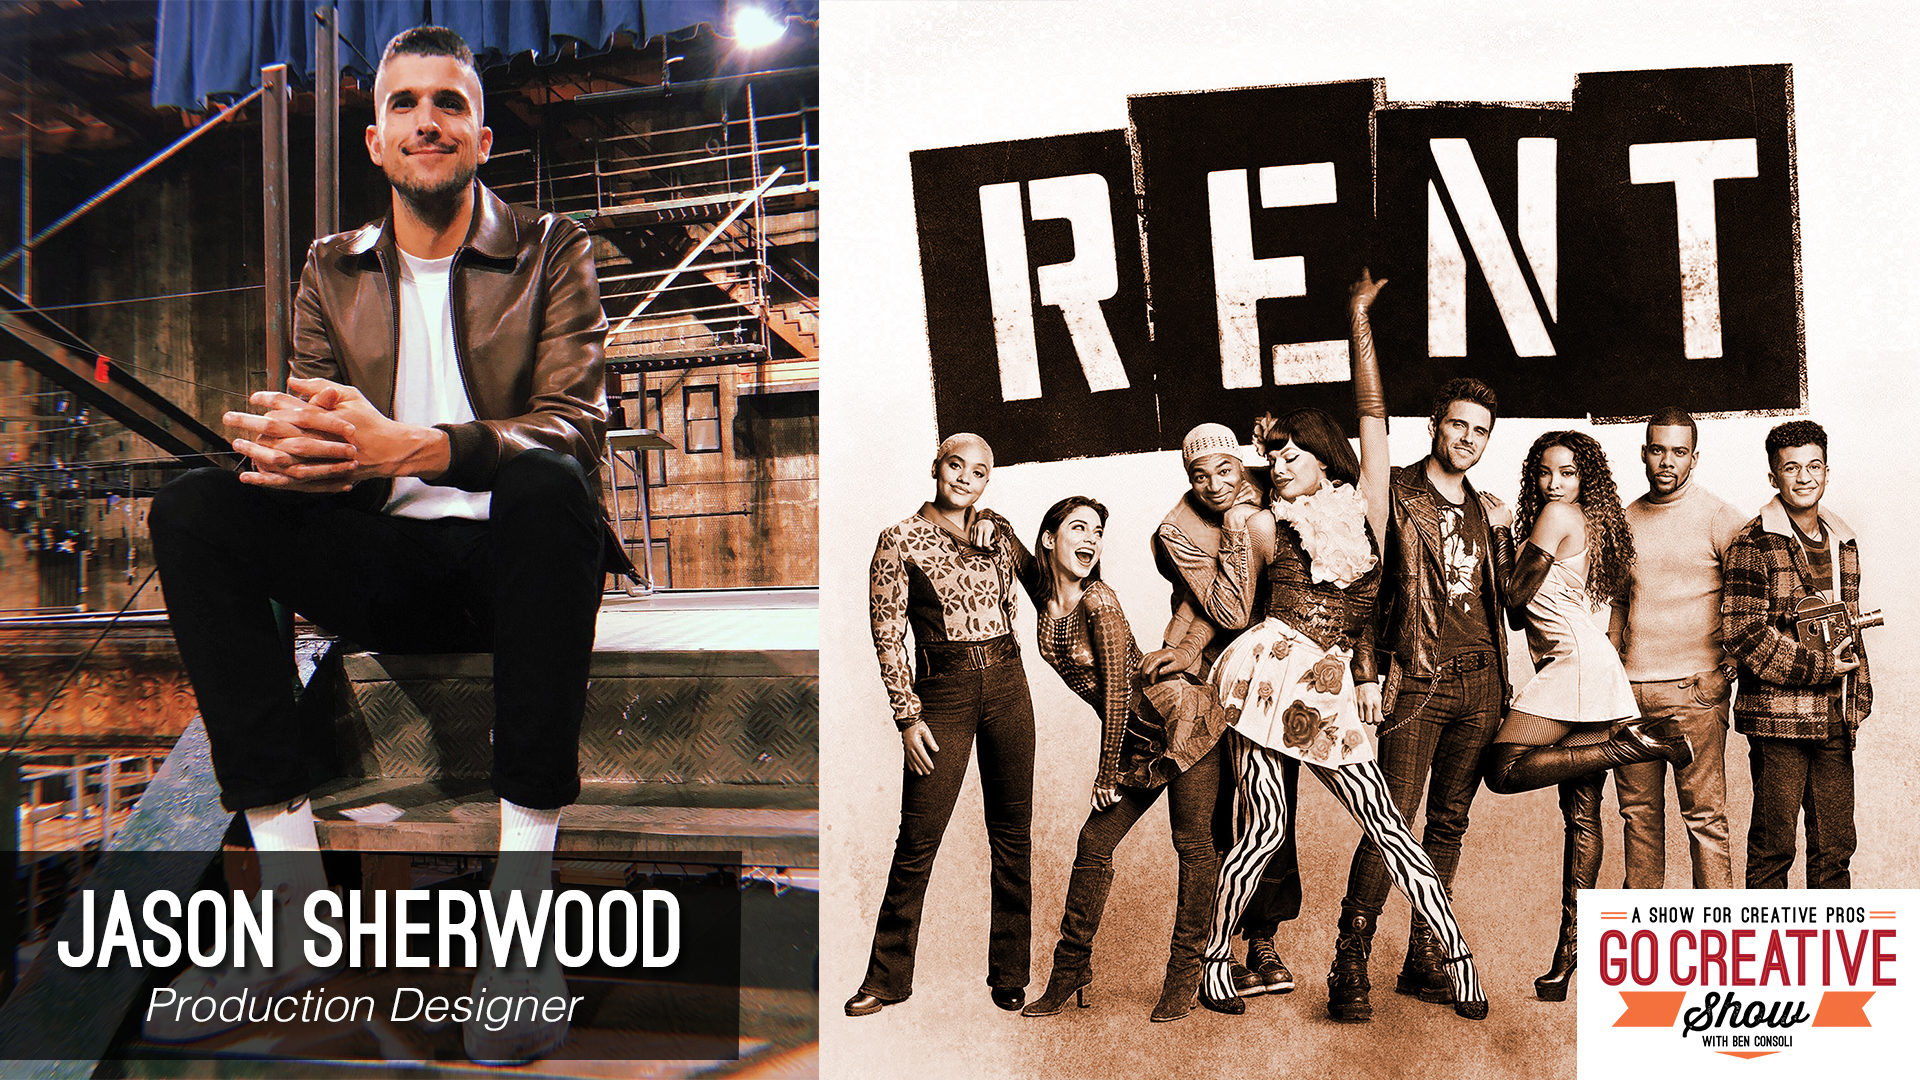 Jason Sherwood production designer for RENT on Go Creative Show